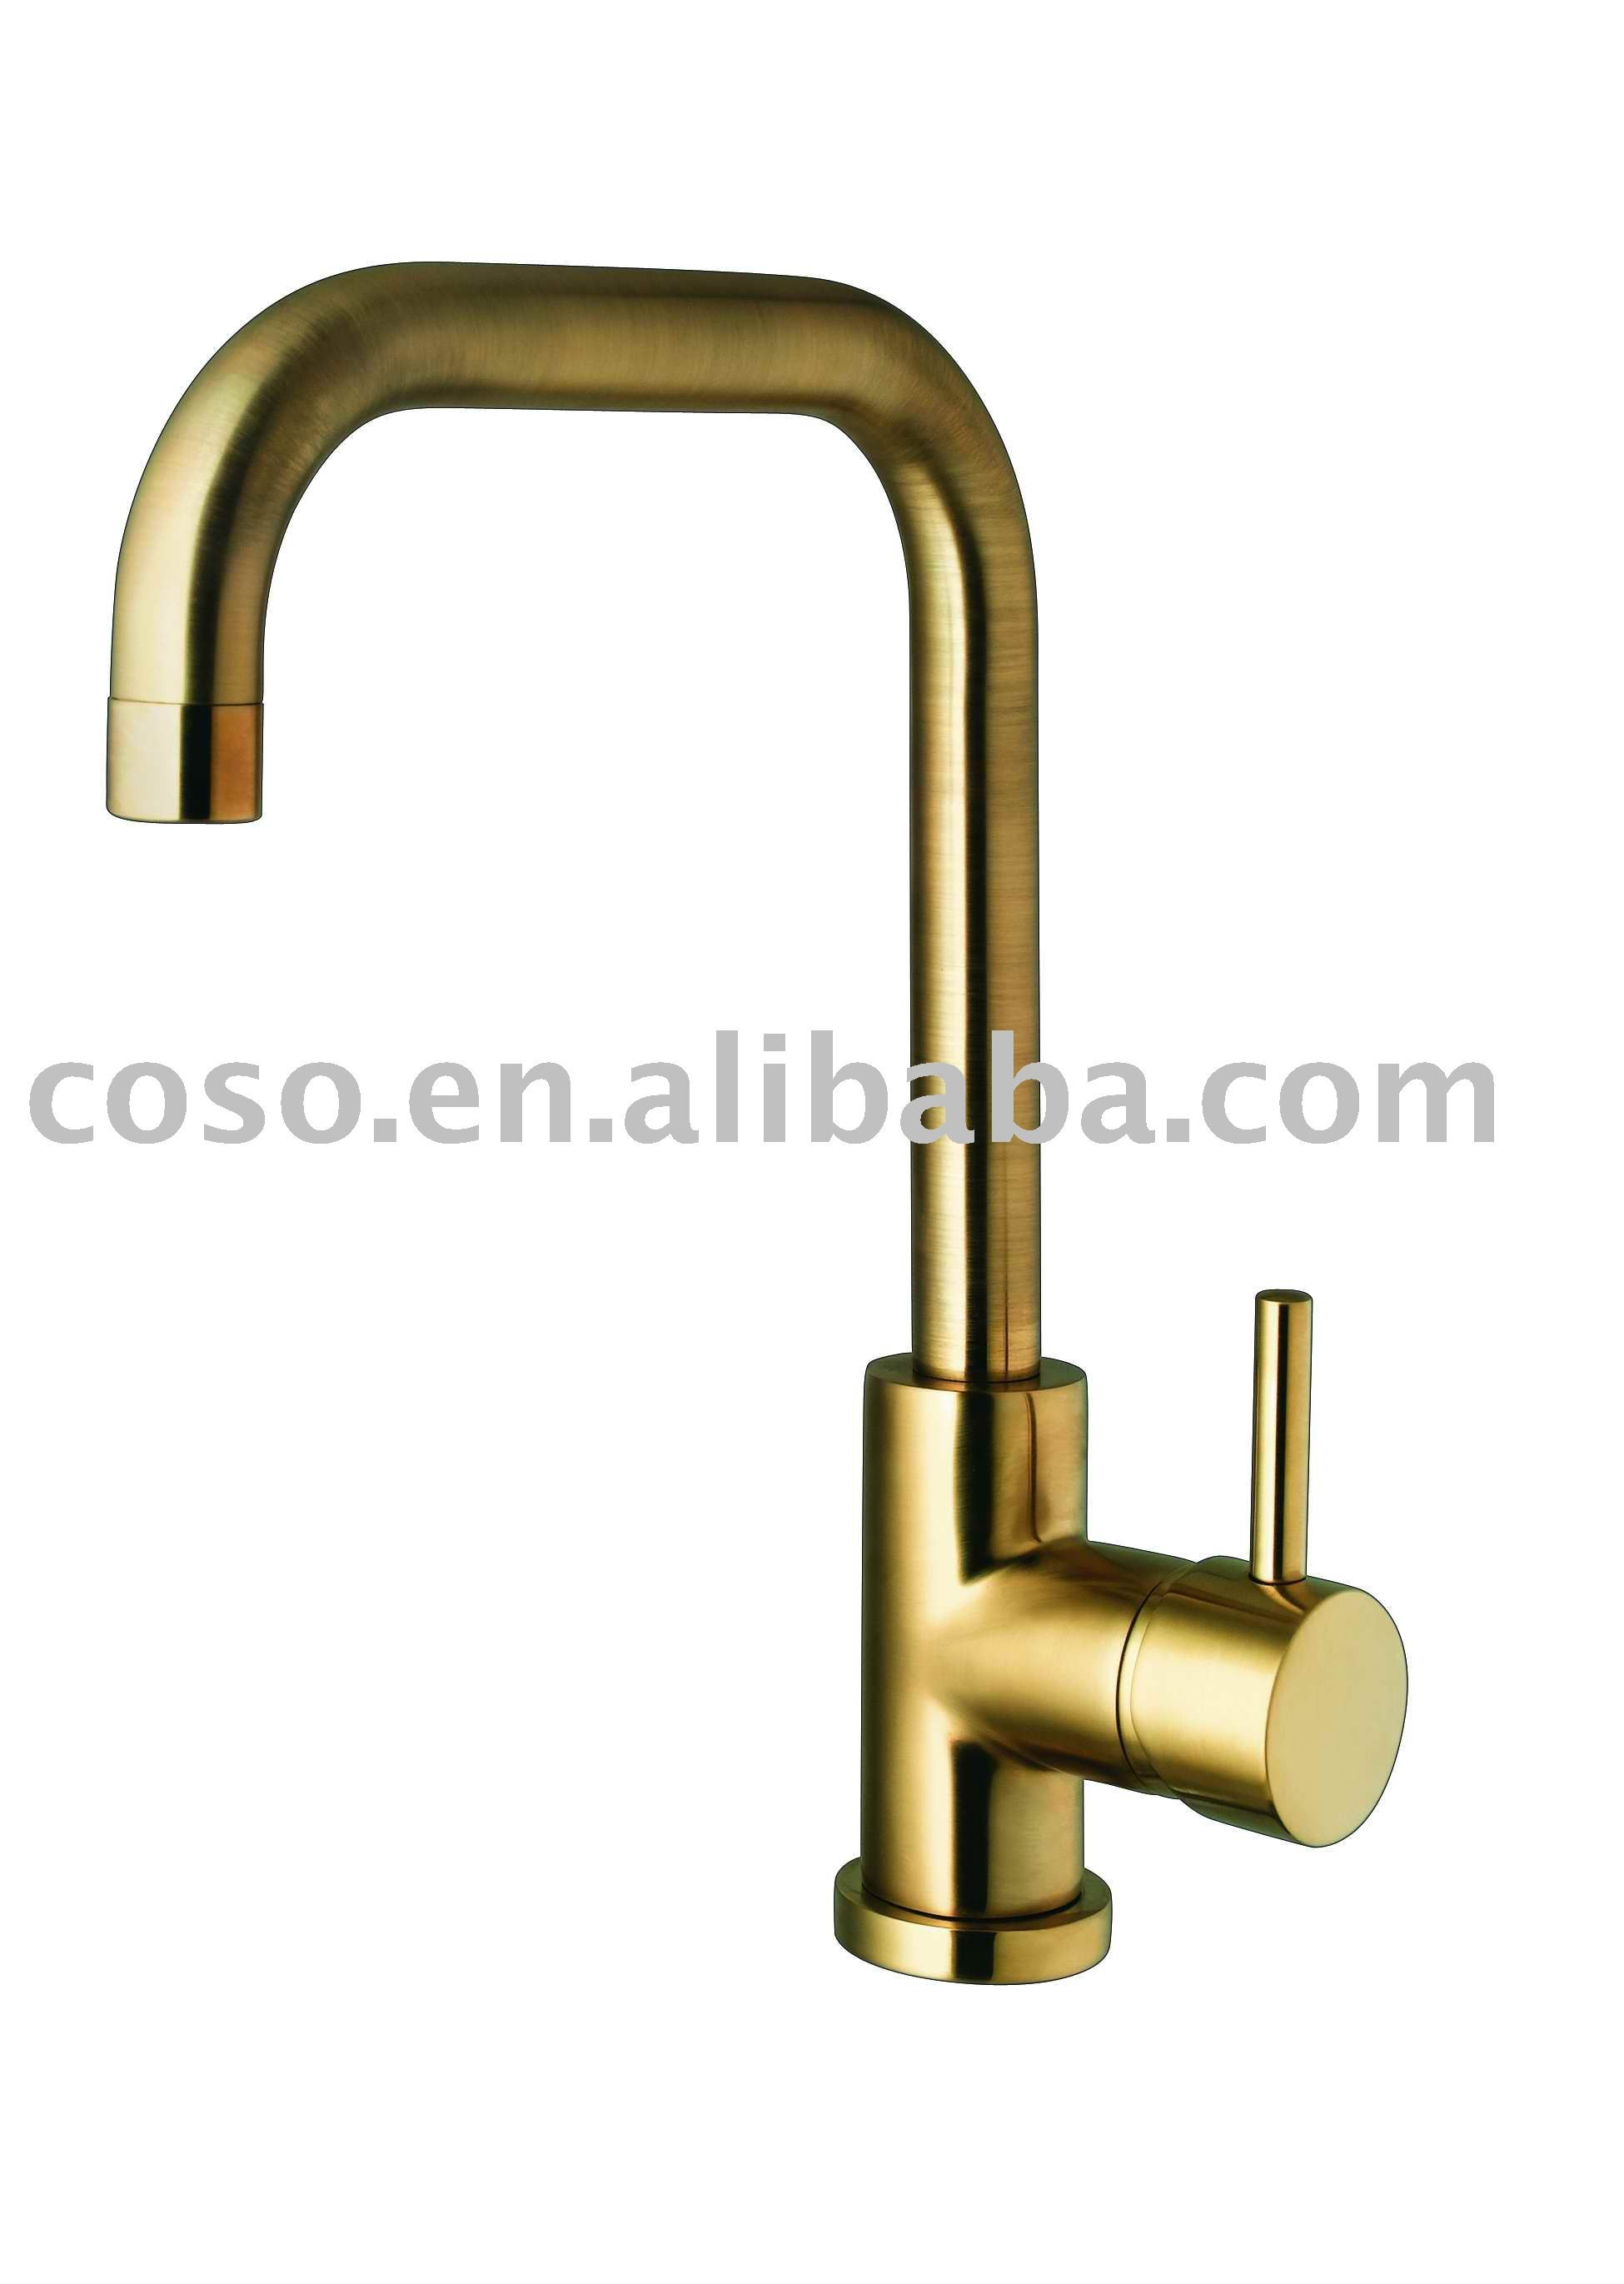 pinterest gold kitchen faucet faucets pin